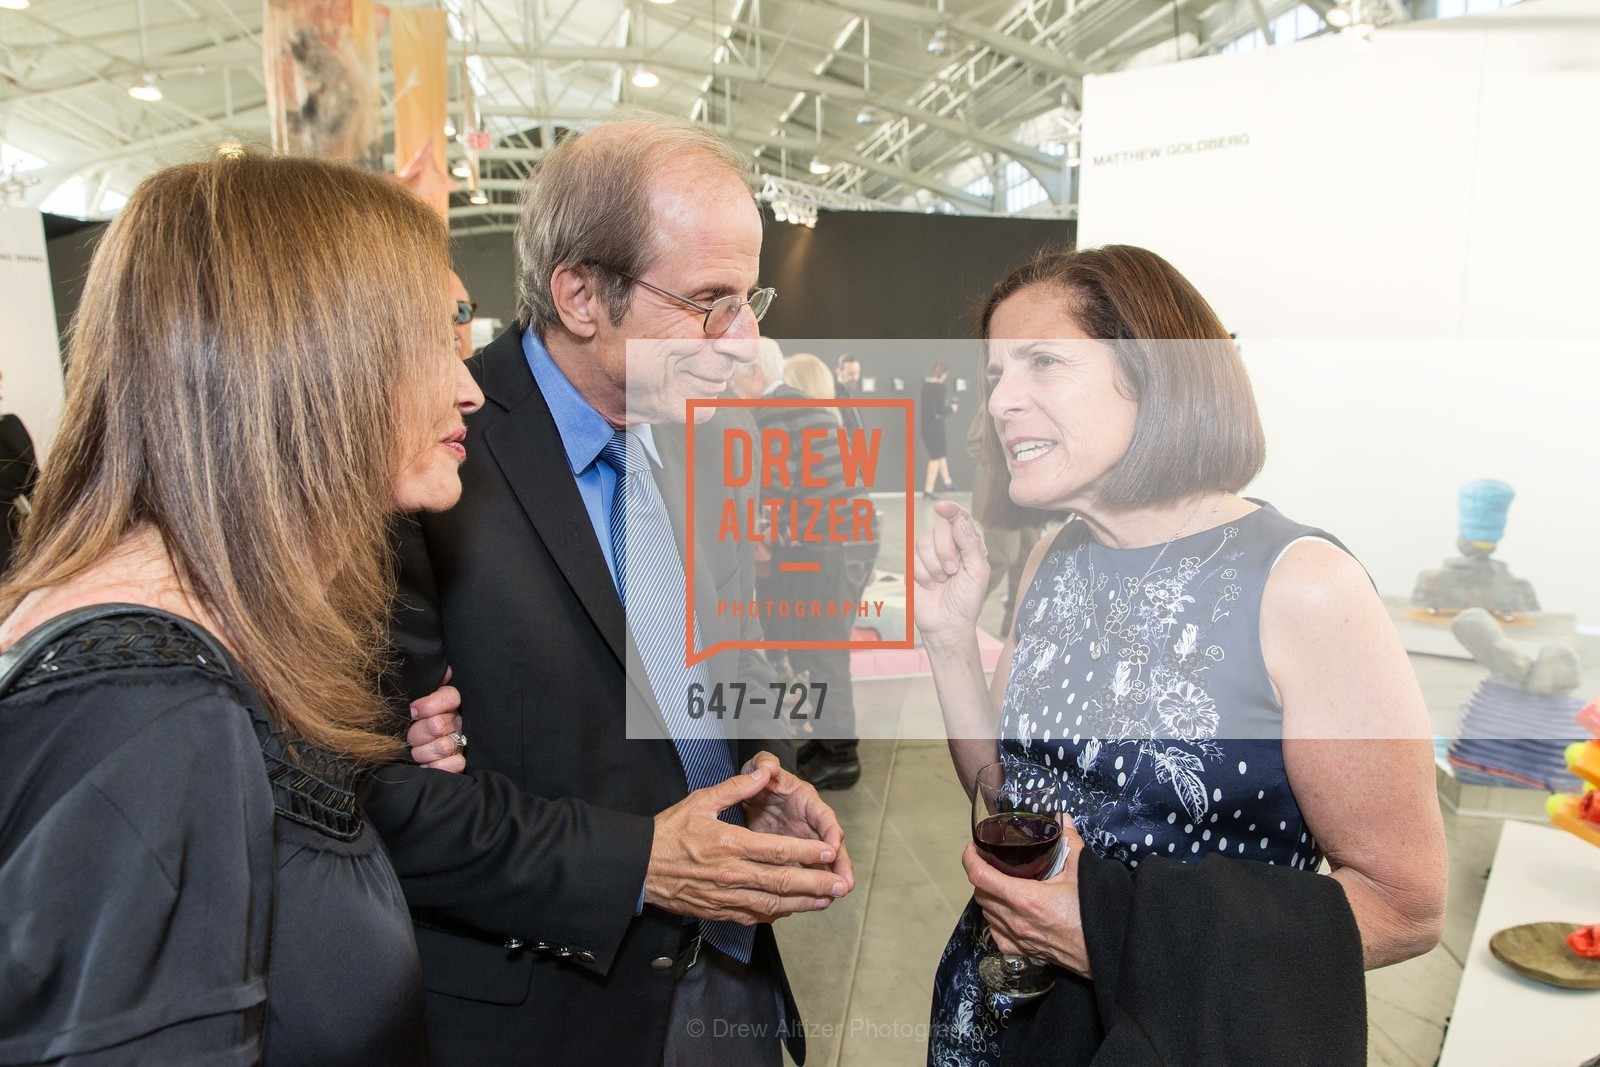 Michael Krasny, Marjorie Swig, SAN FRANCISCO ART INSTITUTE Gala Honoring Art Visionary and Advocate ROSELYNE CHROMAN SWIG, US, May 13th, 2015,Drew Altizer, Drew Altizer Photography, full-service agency, private events, San Francisco photographer, photographer california